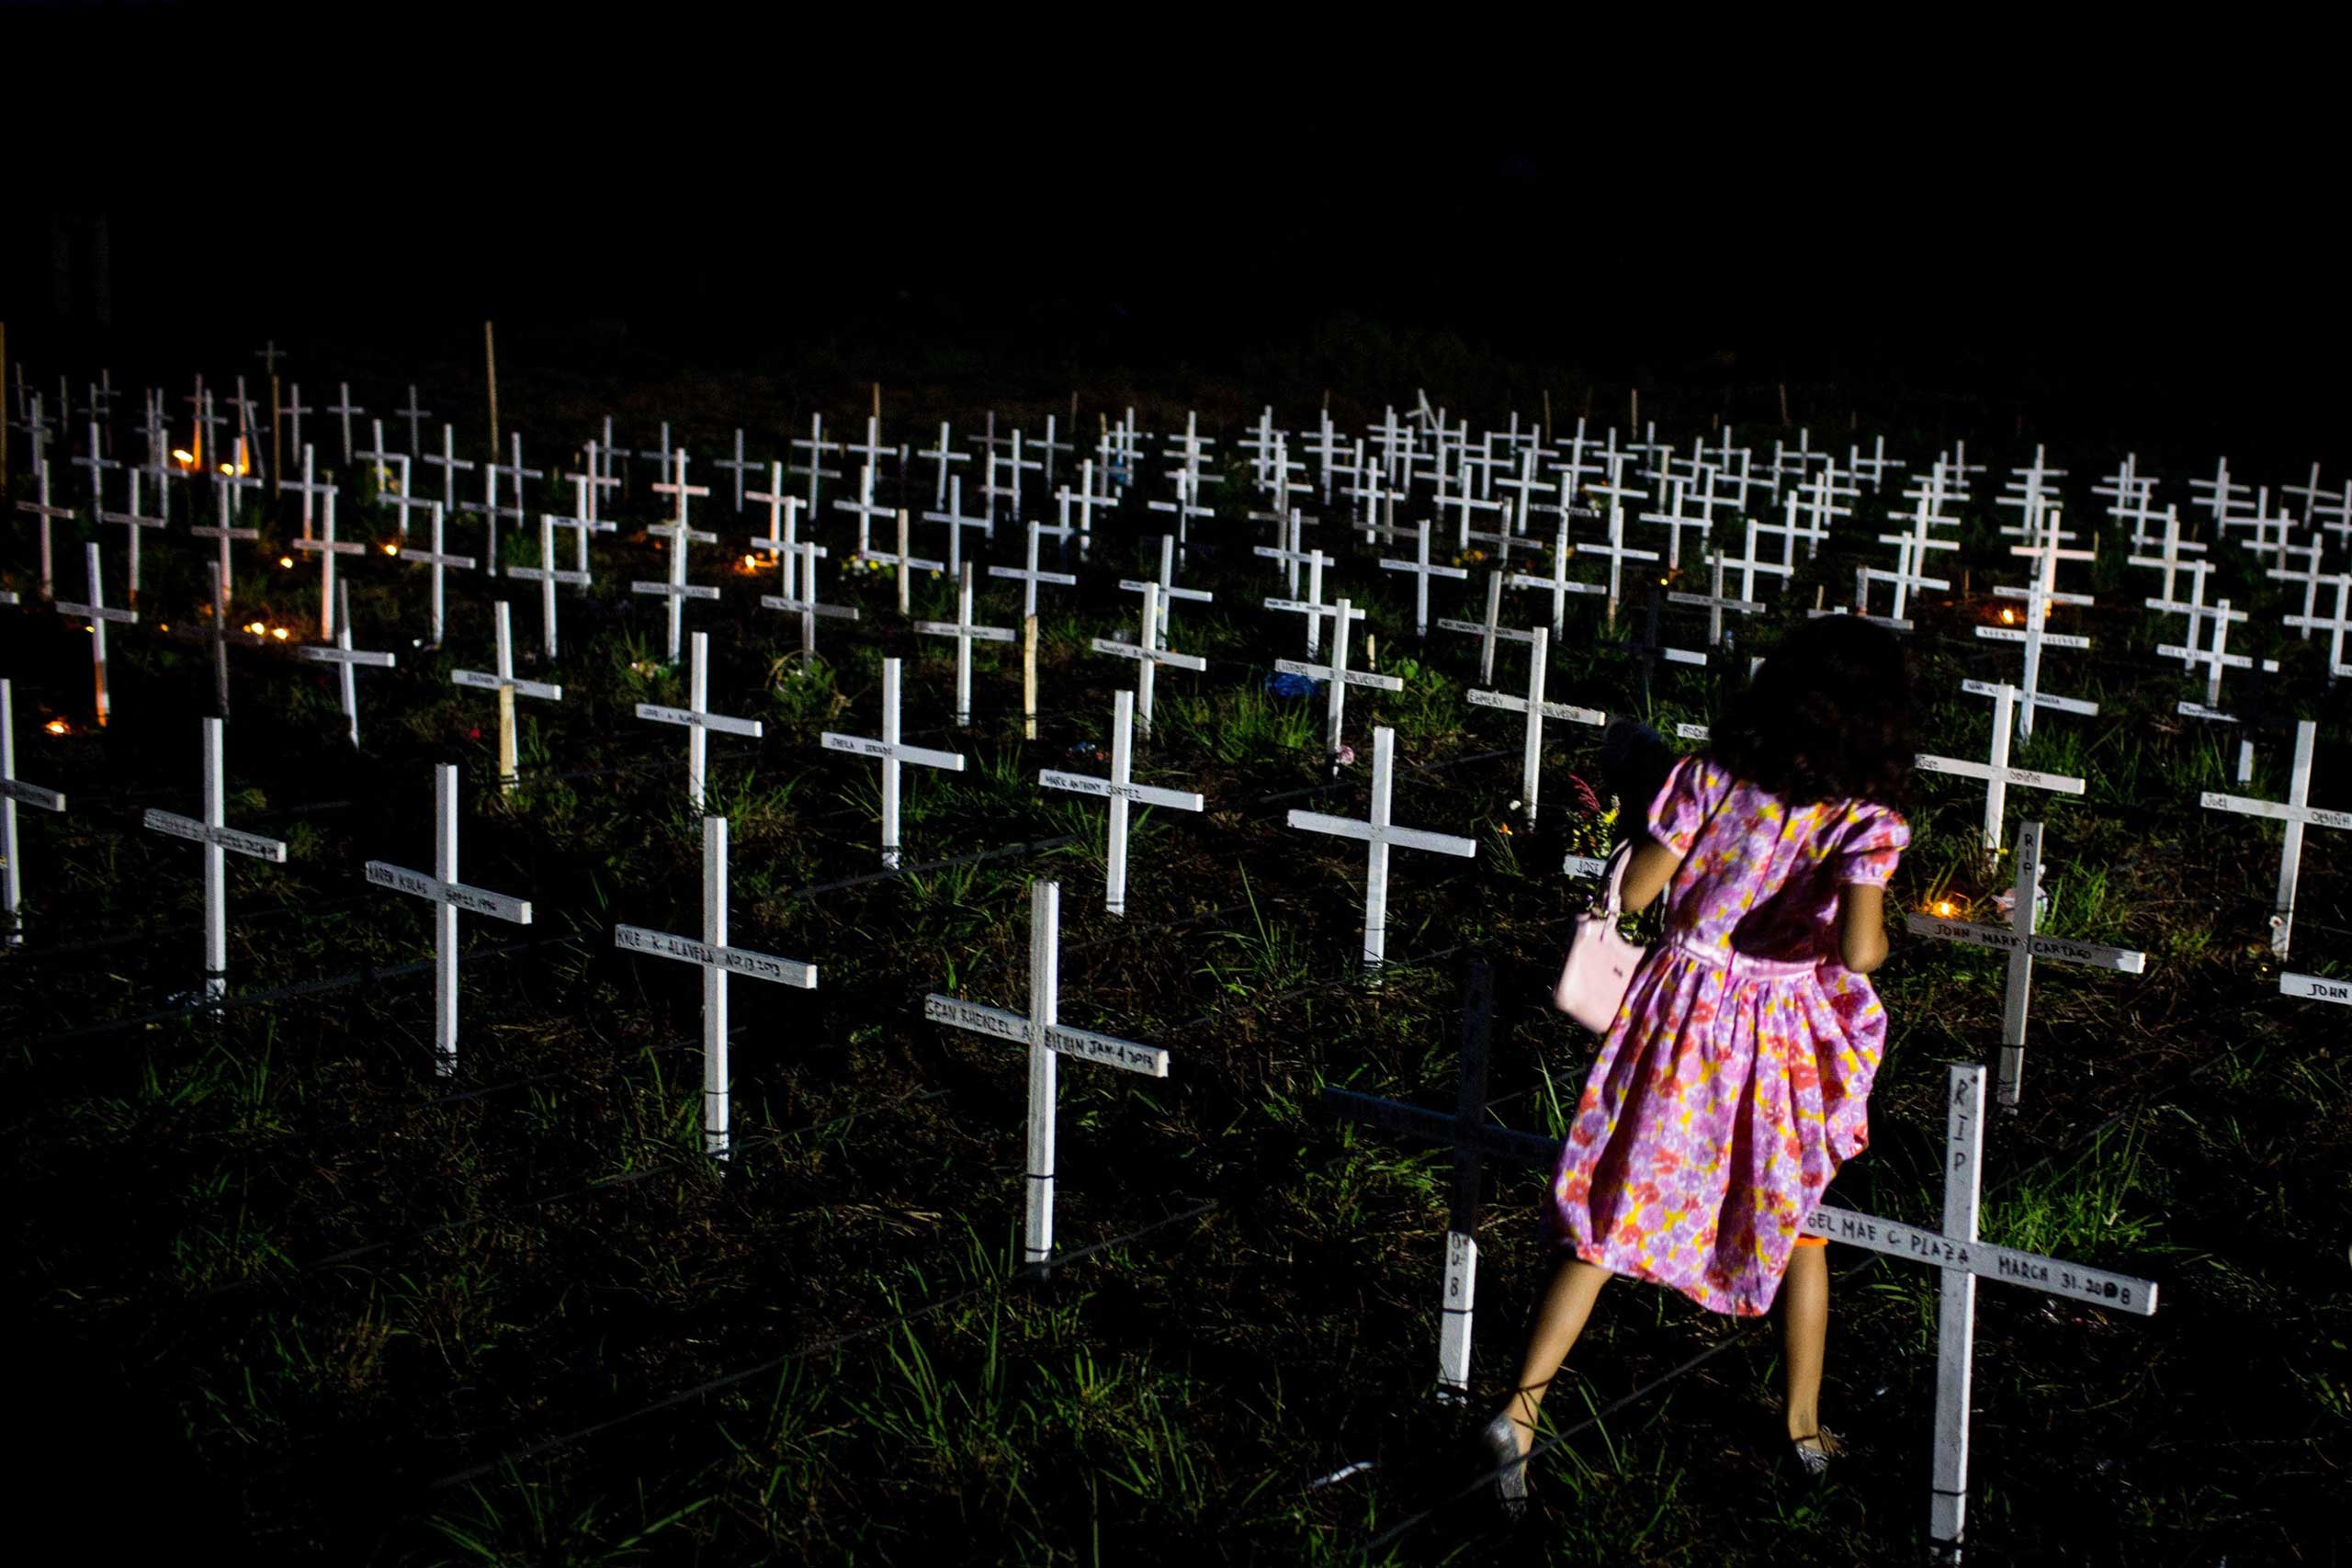 Nov. 2, 2014. A young girl walks between crosses as she tries to find the  grave of a loved one at a newly constructed mass grave for 3,000 typhoon Haiyan victims on the grounds of the Holy Cross Cemetery during All Souls Day in Tacloban, Leyte, Philippines.